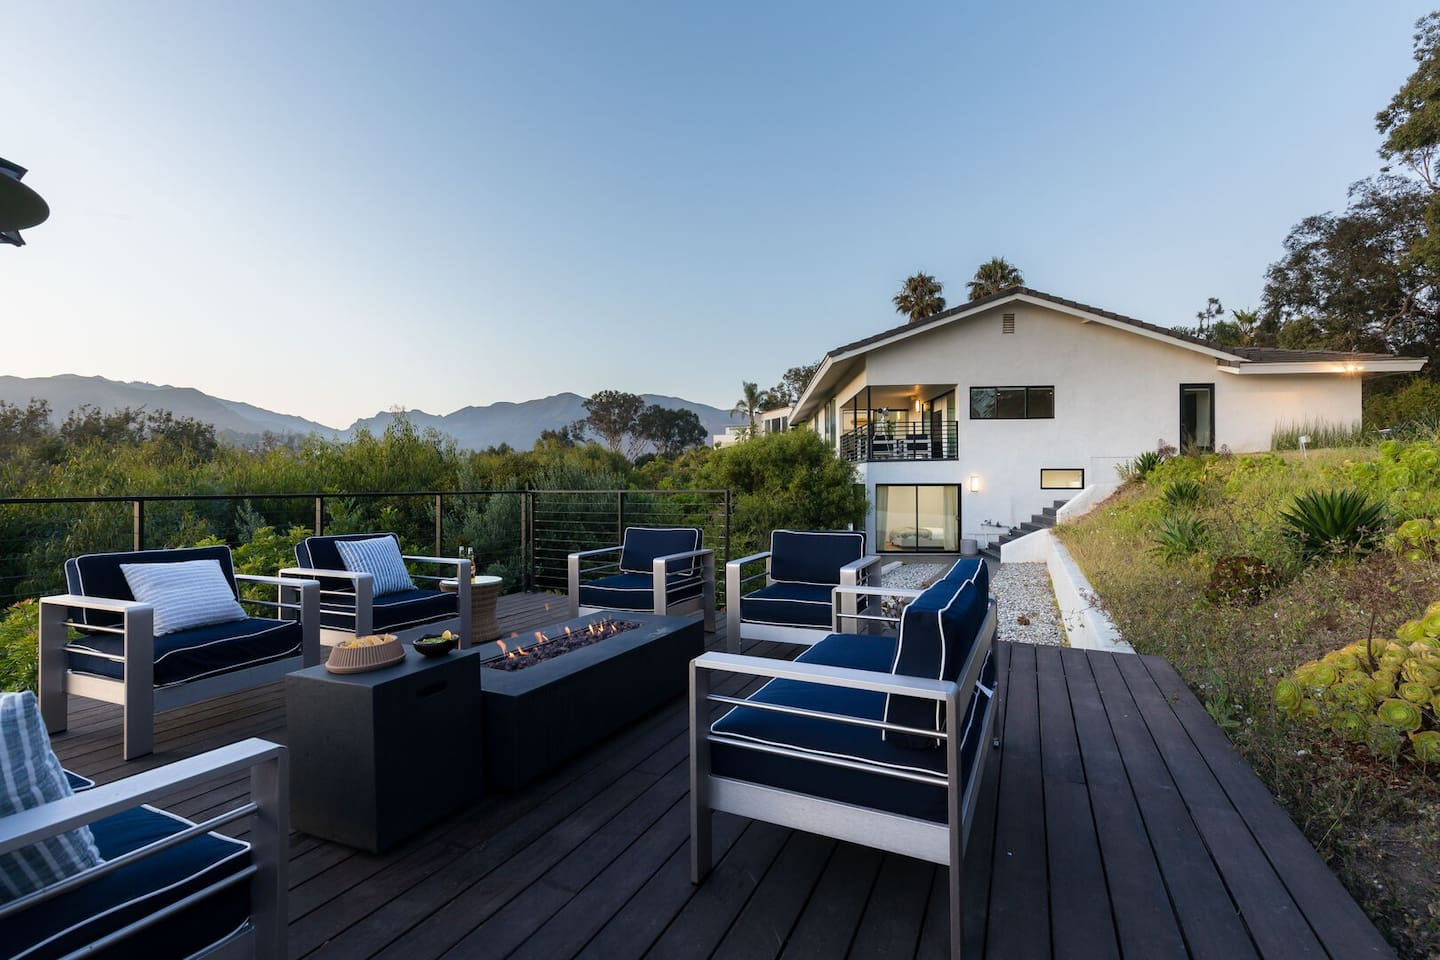 Outdoor patio with ocean and mountain view. Relax around the fire pit!